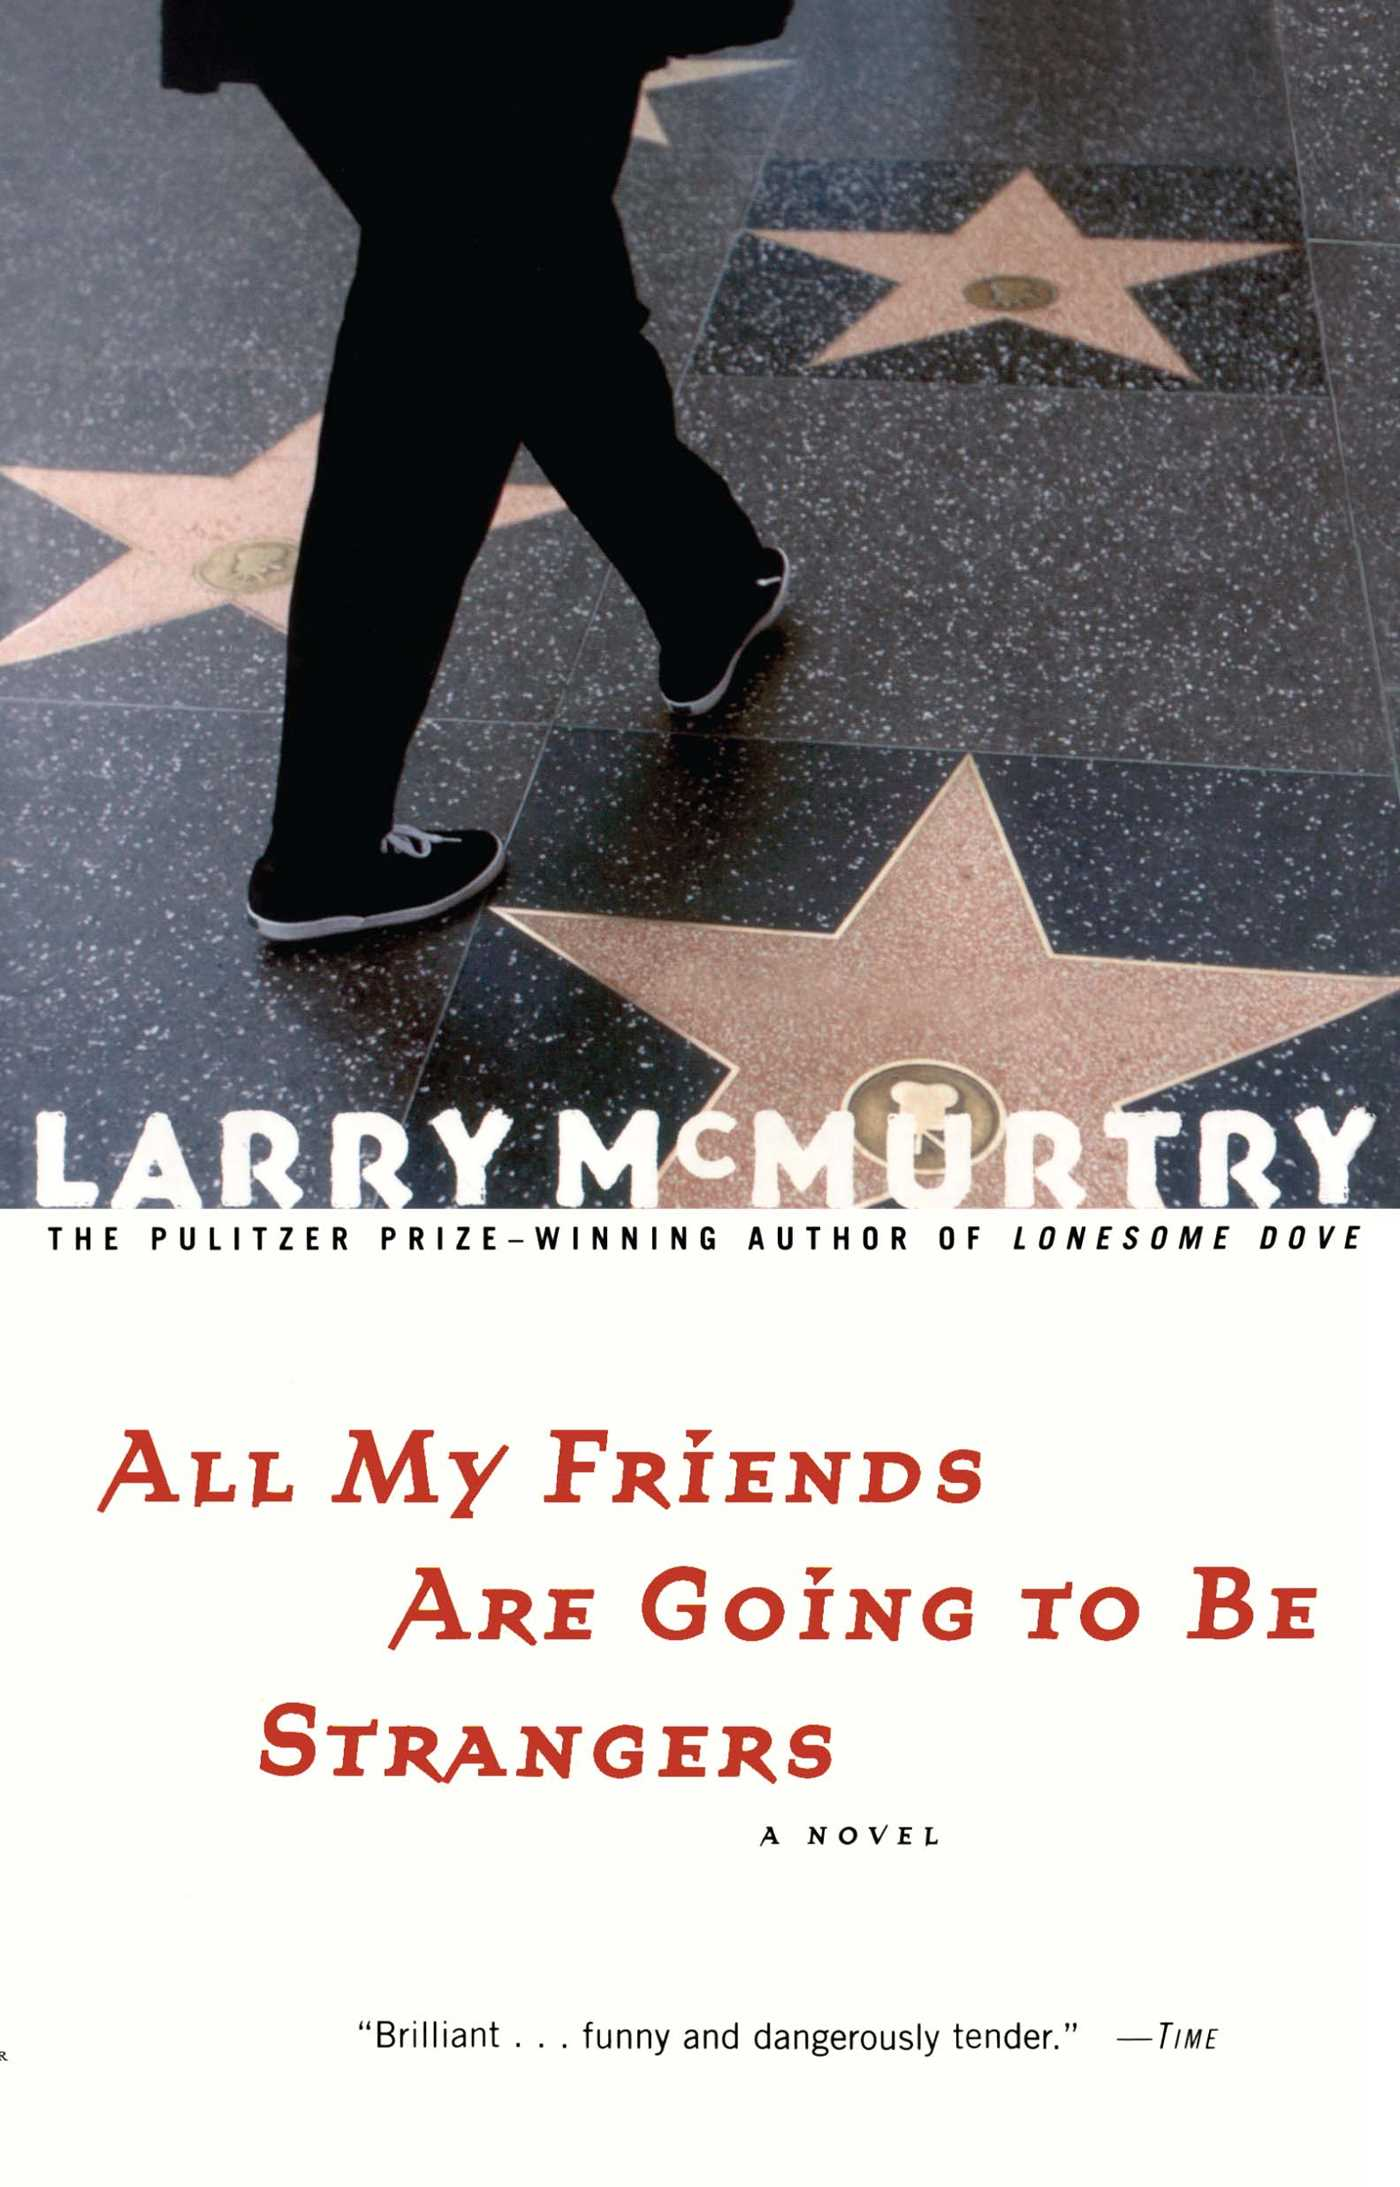 All-my-friends-are-going-to-be-strangers-9780684853826_hr